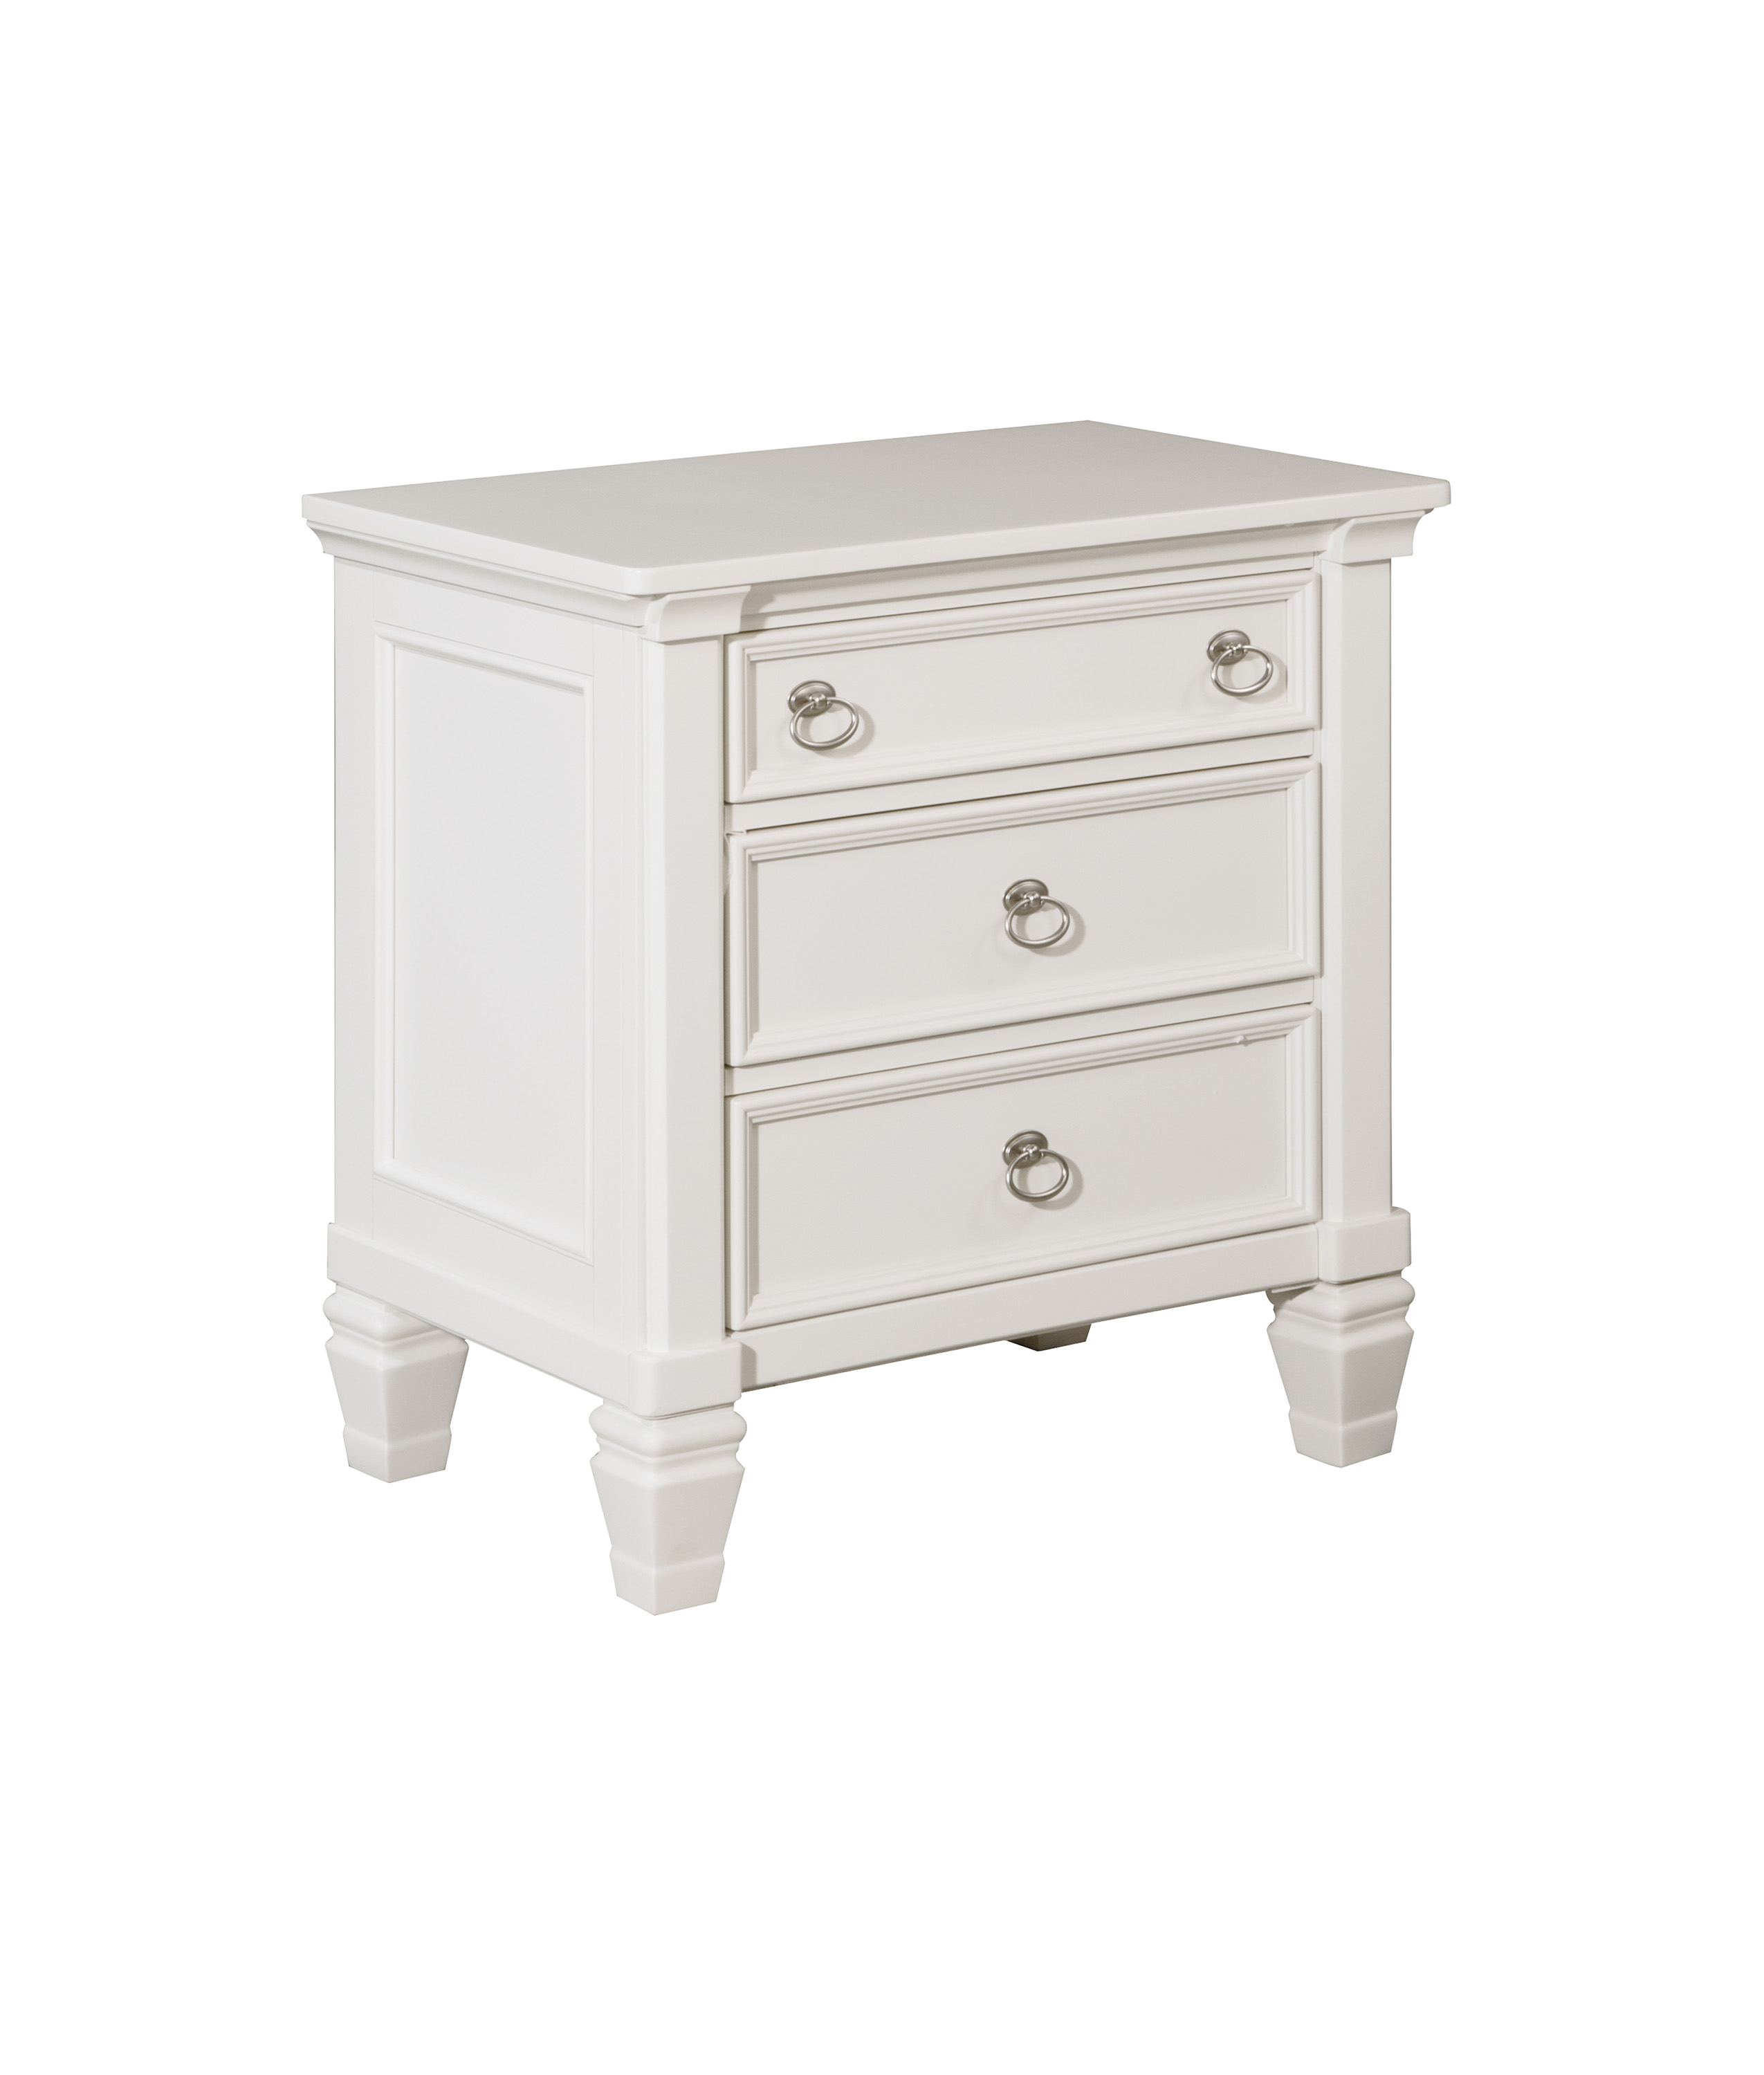 bedroom night stands tables round chrome accent table cool nightstands painted nightstand ideas dresser tall stand brass bedside sheesham wood nest tablecloth sizes pottery barn